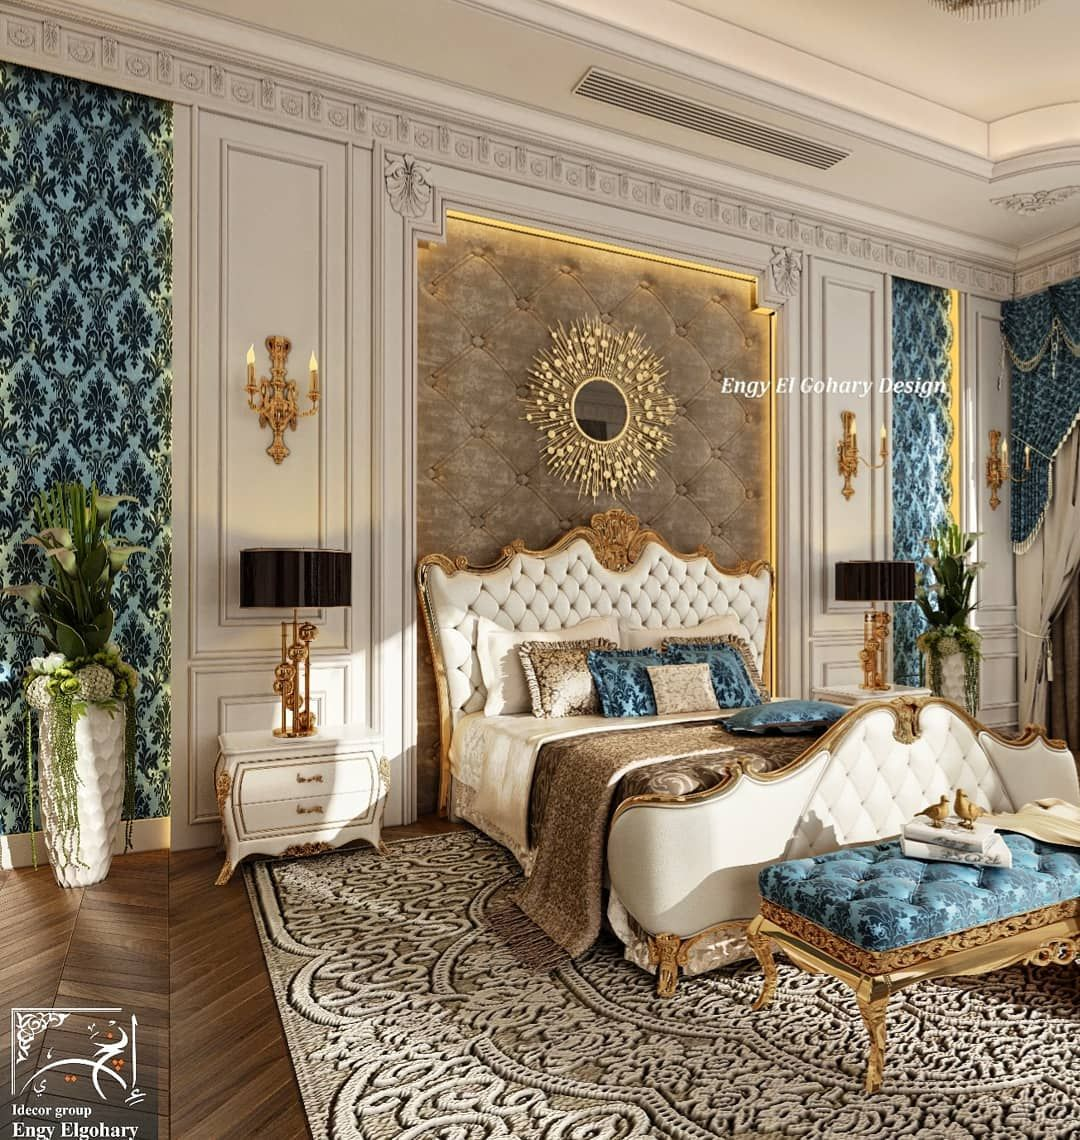 Pin By Z Axis Interiors Architects On Luxury Interiors In 2021 Luxury Interior Home Decor Home